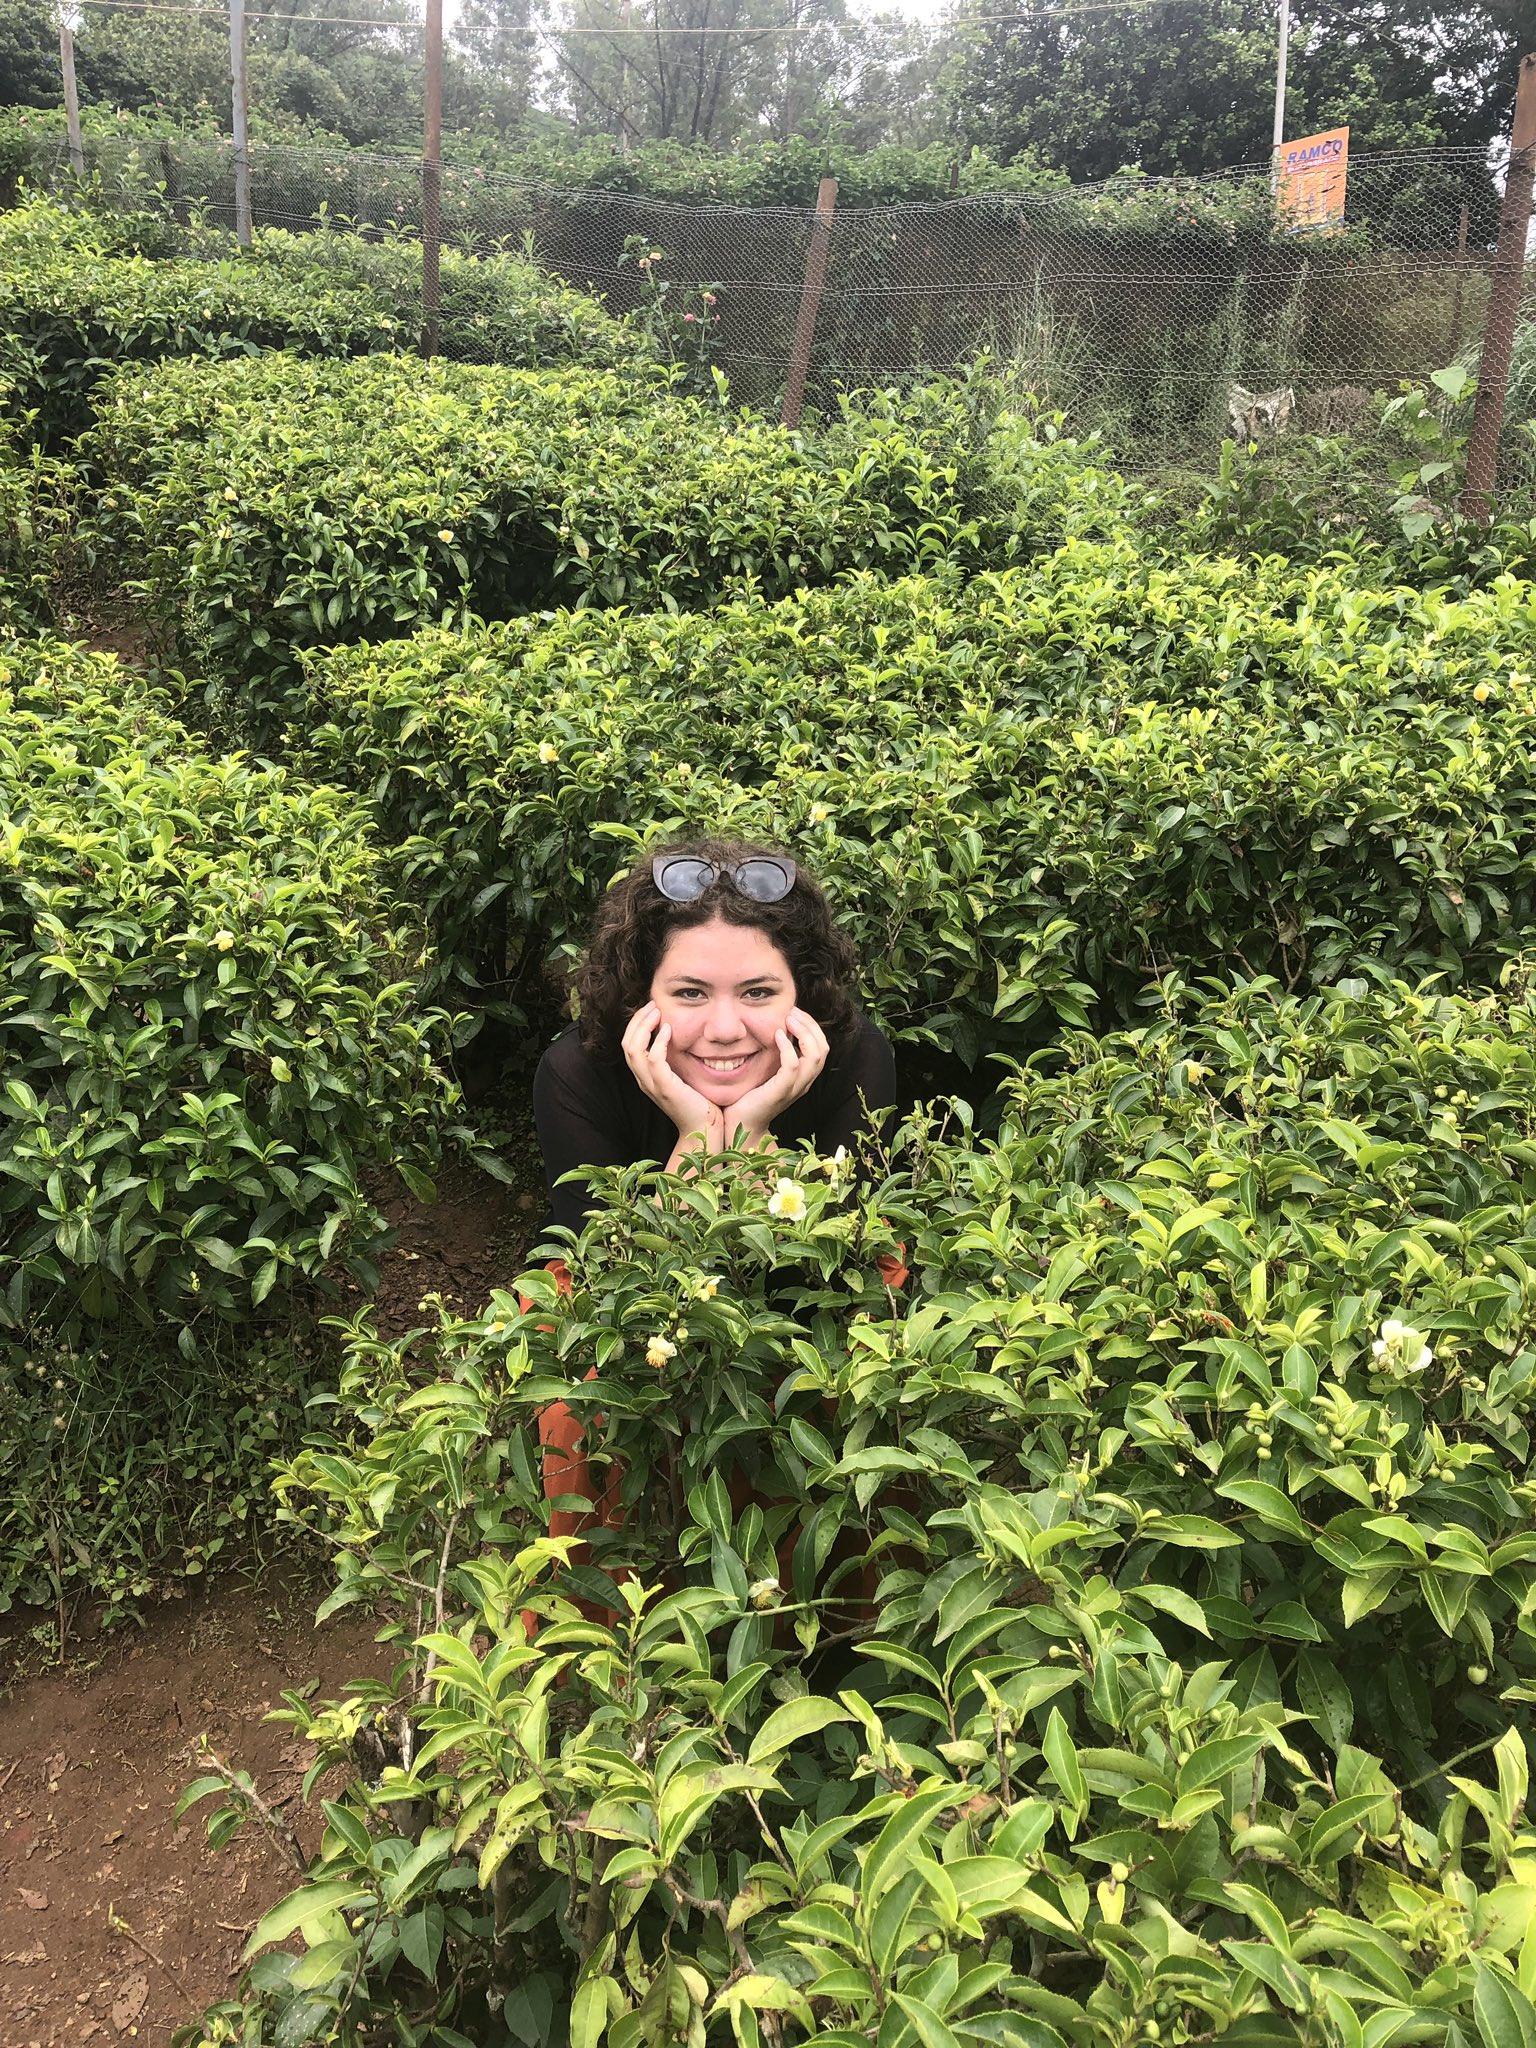 Elizabeth, smiling and surrounded by tea plants.